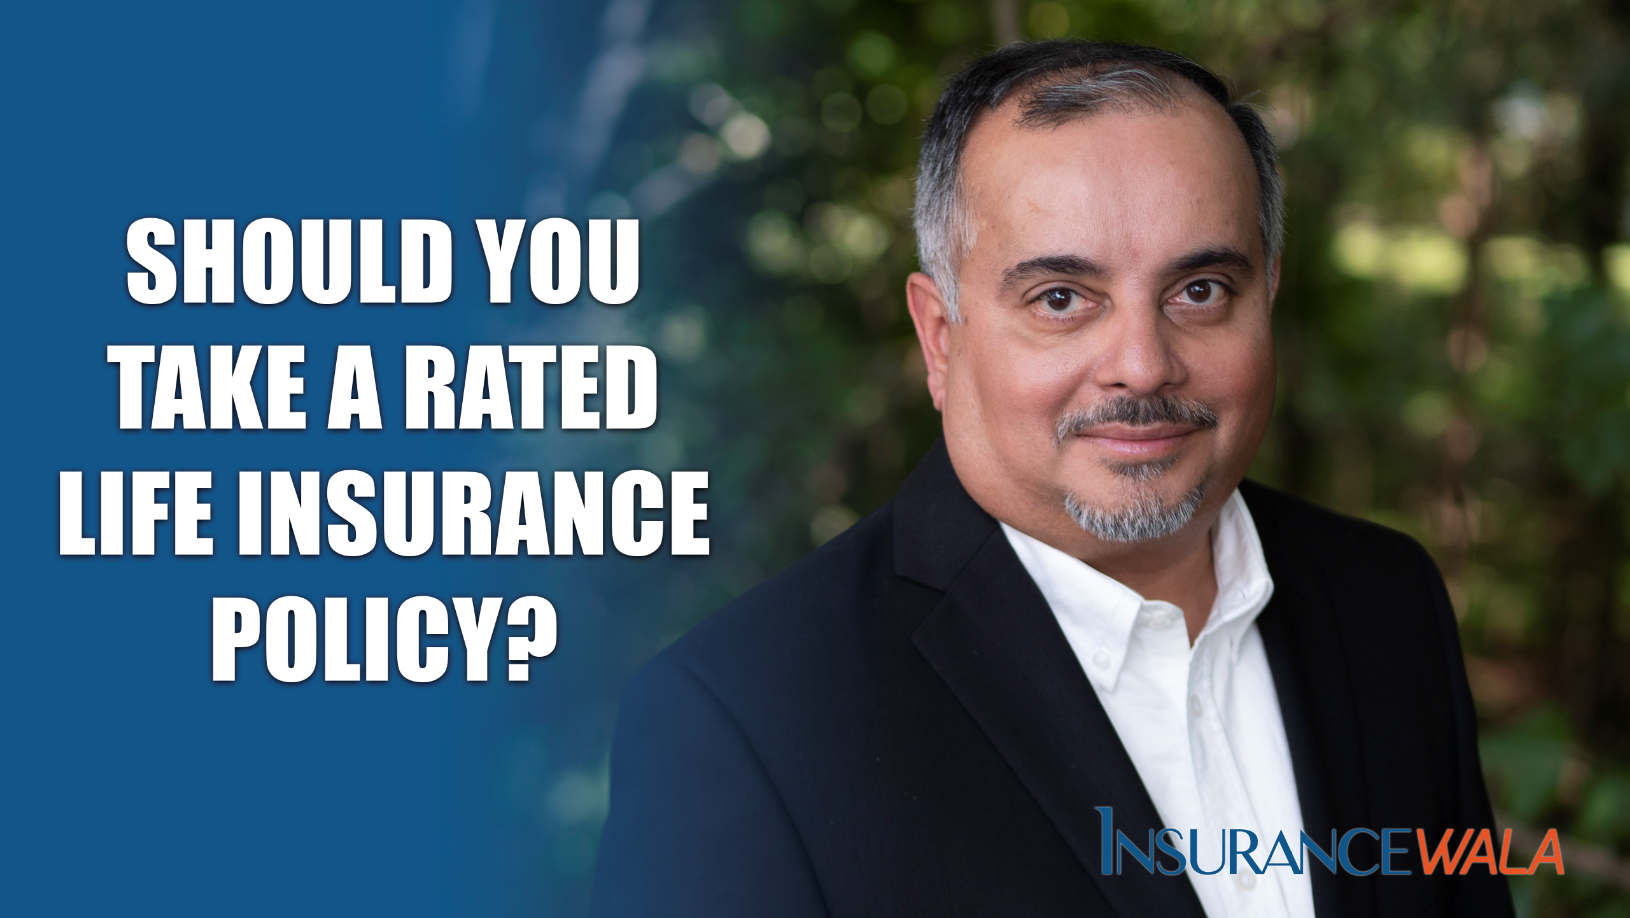 Should You Take a Rated Life Insurance Policy?